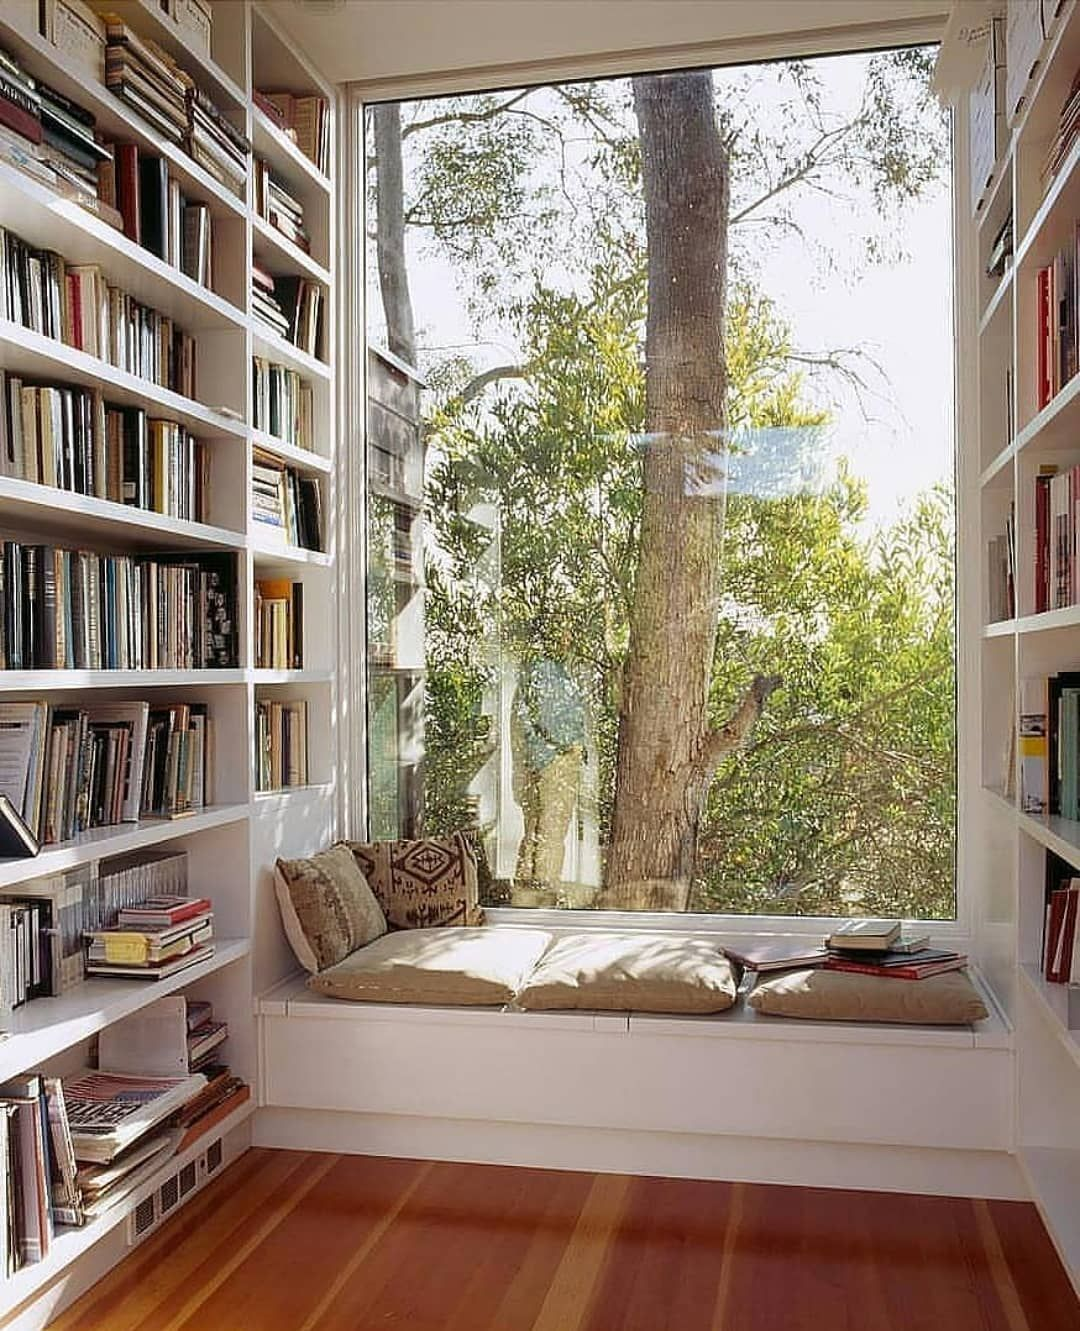 Home Library. Window Seat, Pillows, Best Reading Corner